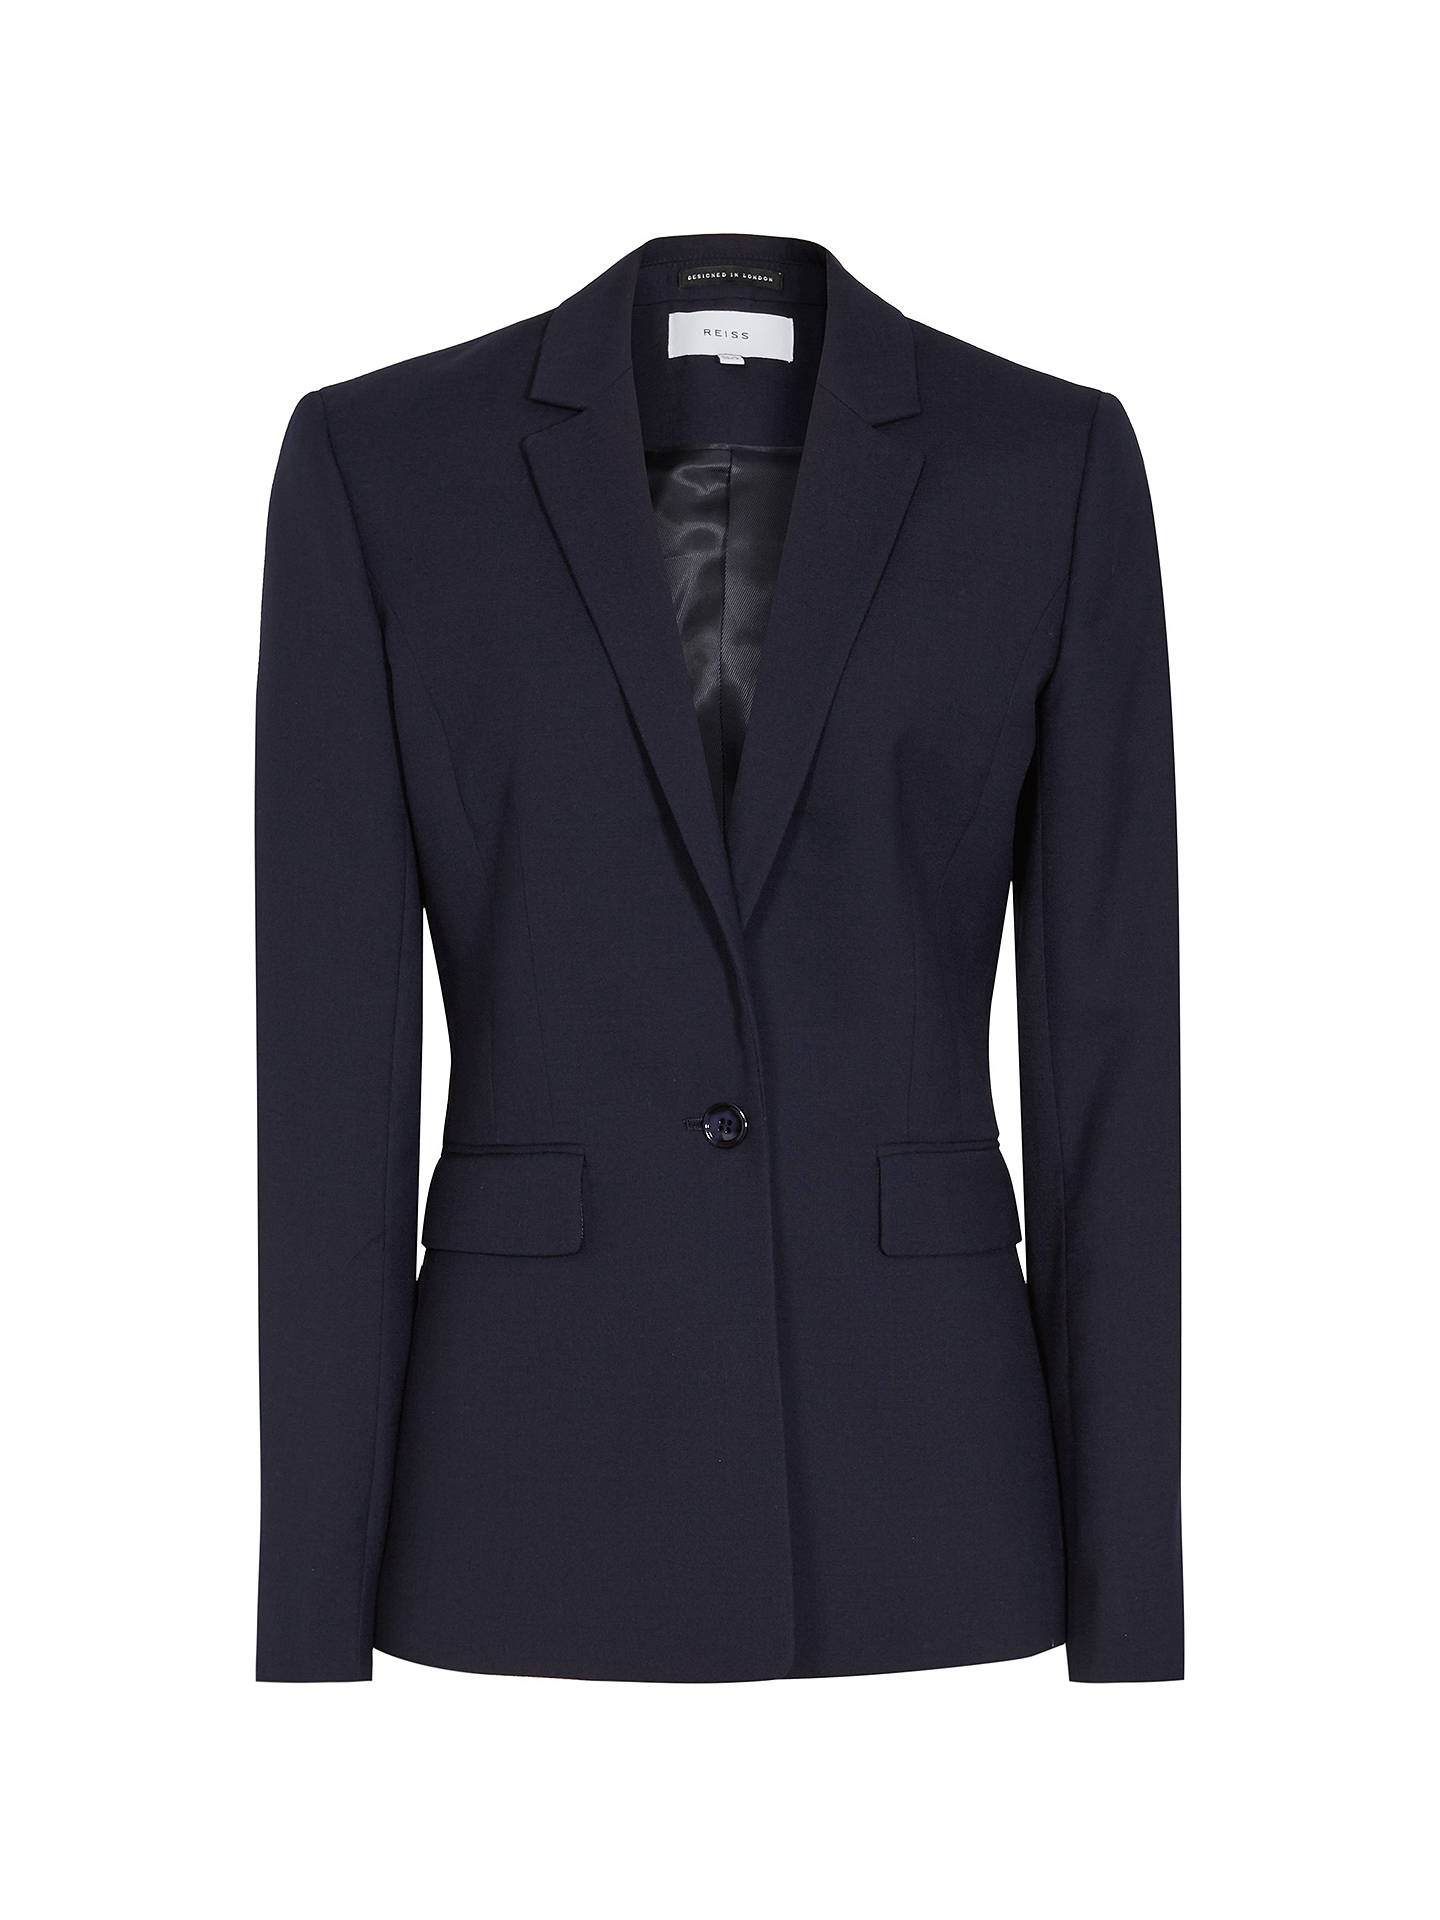 Buy Reiss Faulkner Jacket, Navy, 6 Online at johnlewis.com